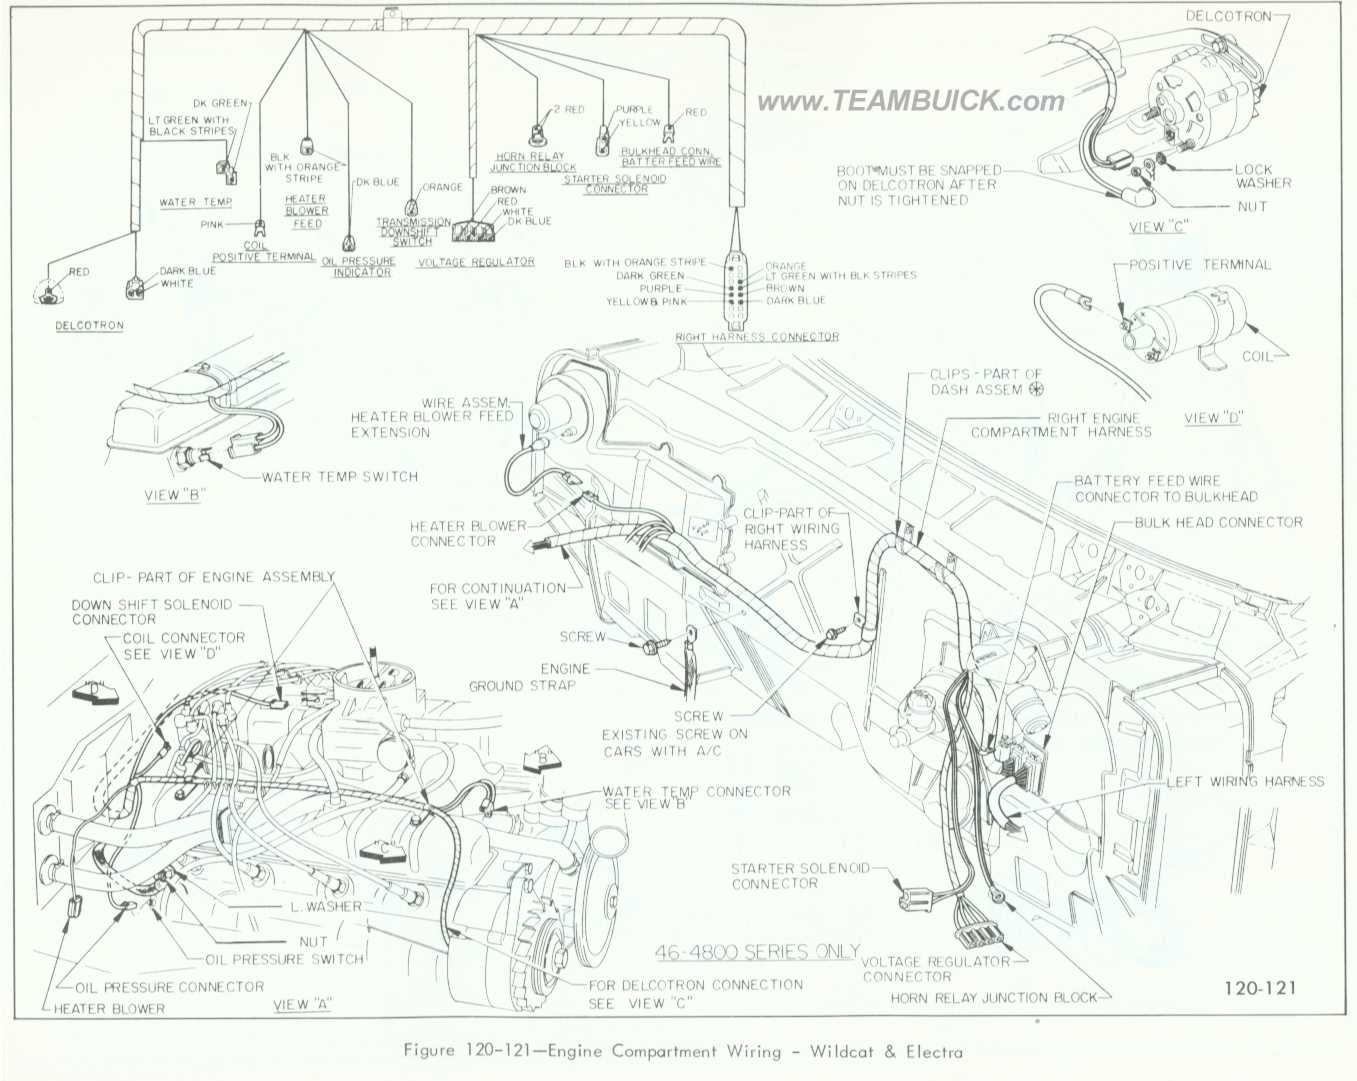 1966 buick wildcat wiring diagram wireless mobile charger circuit electra engine compartment